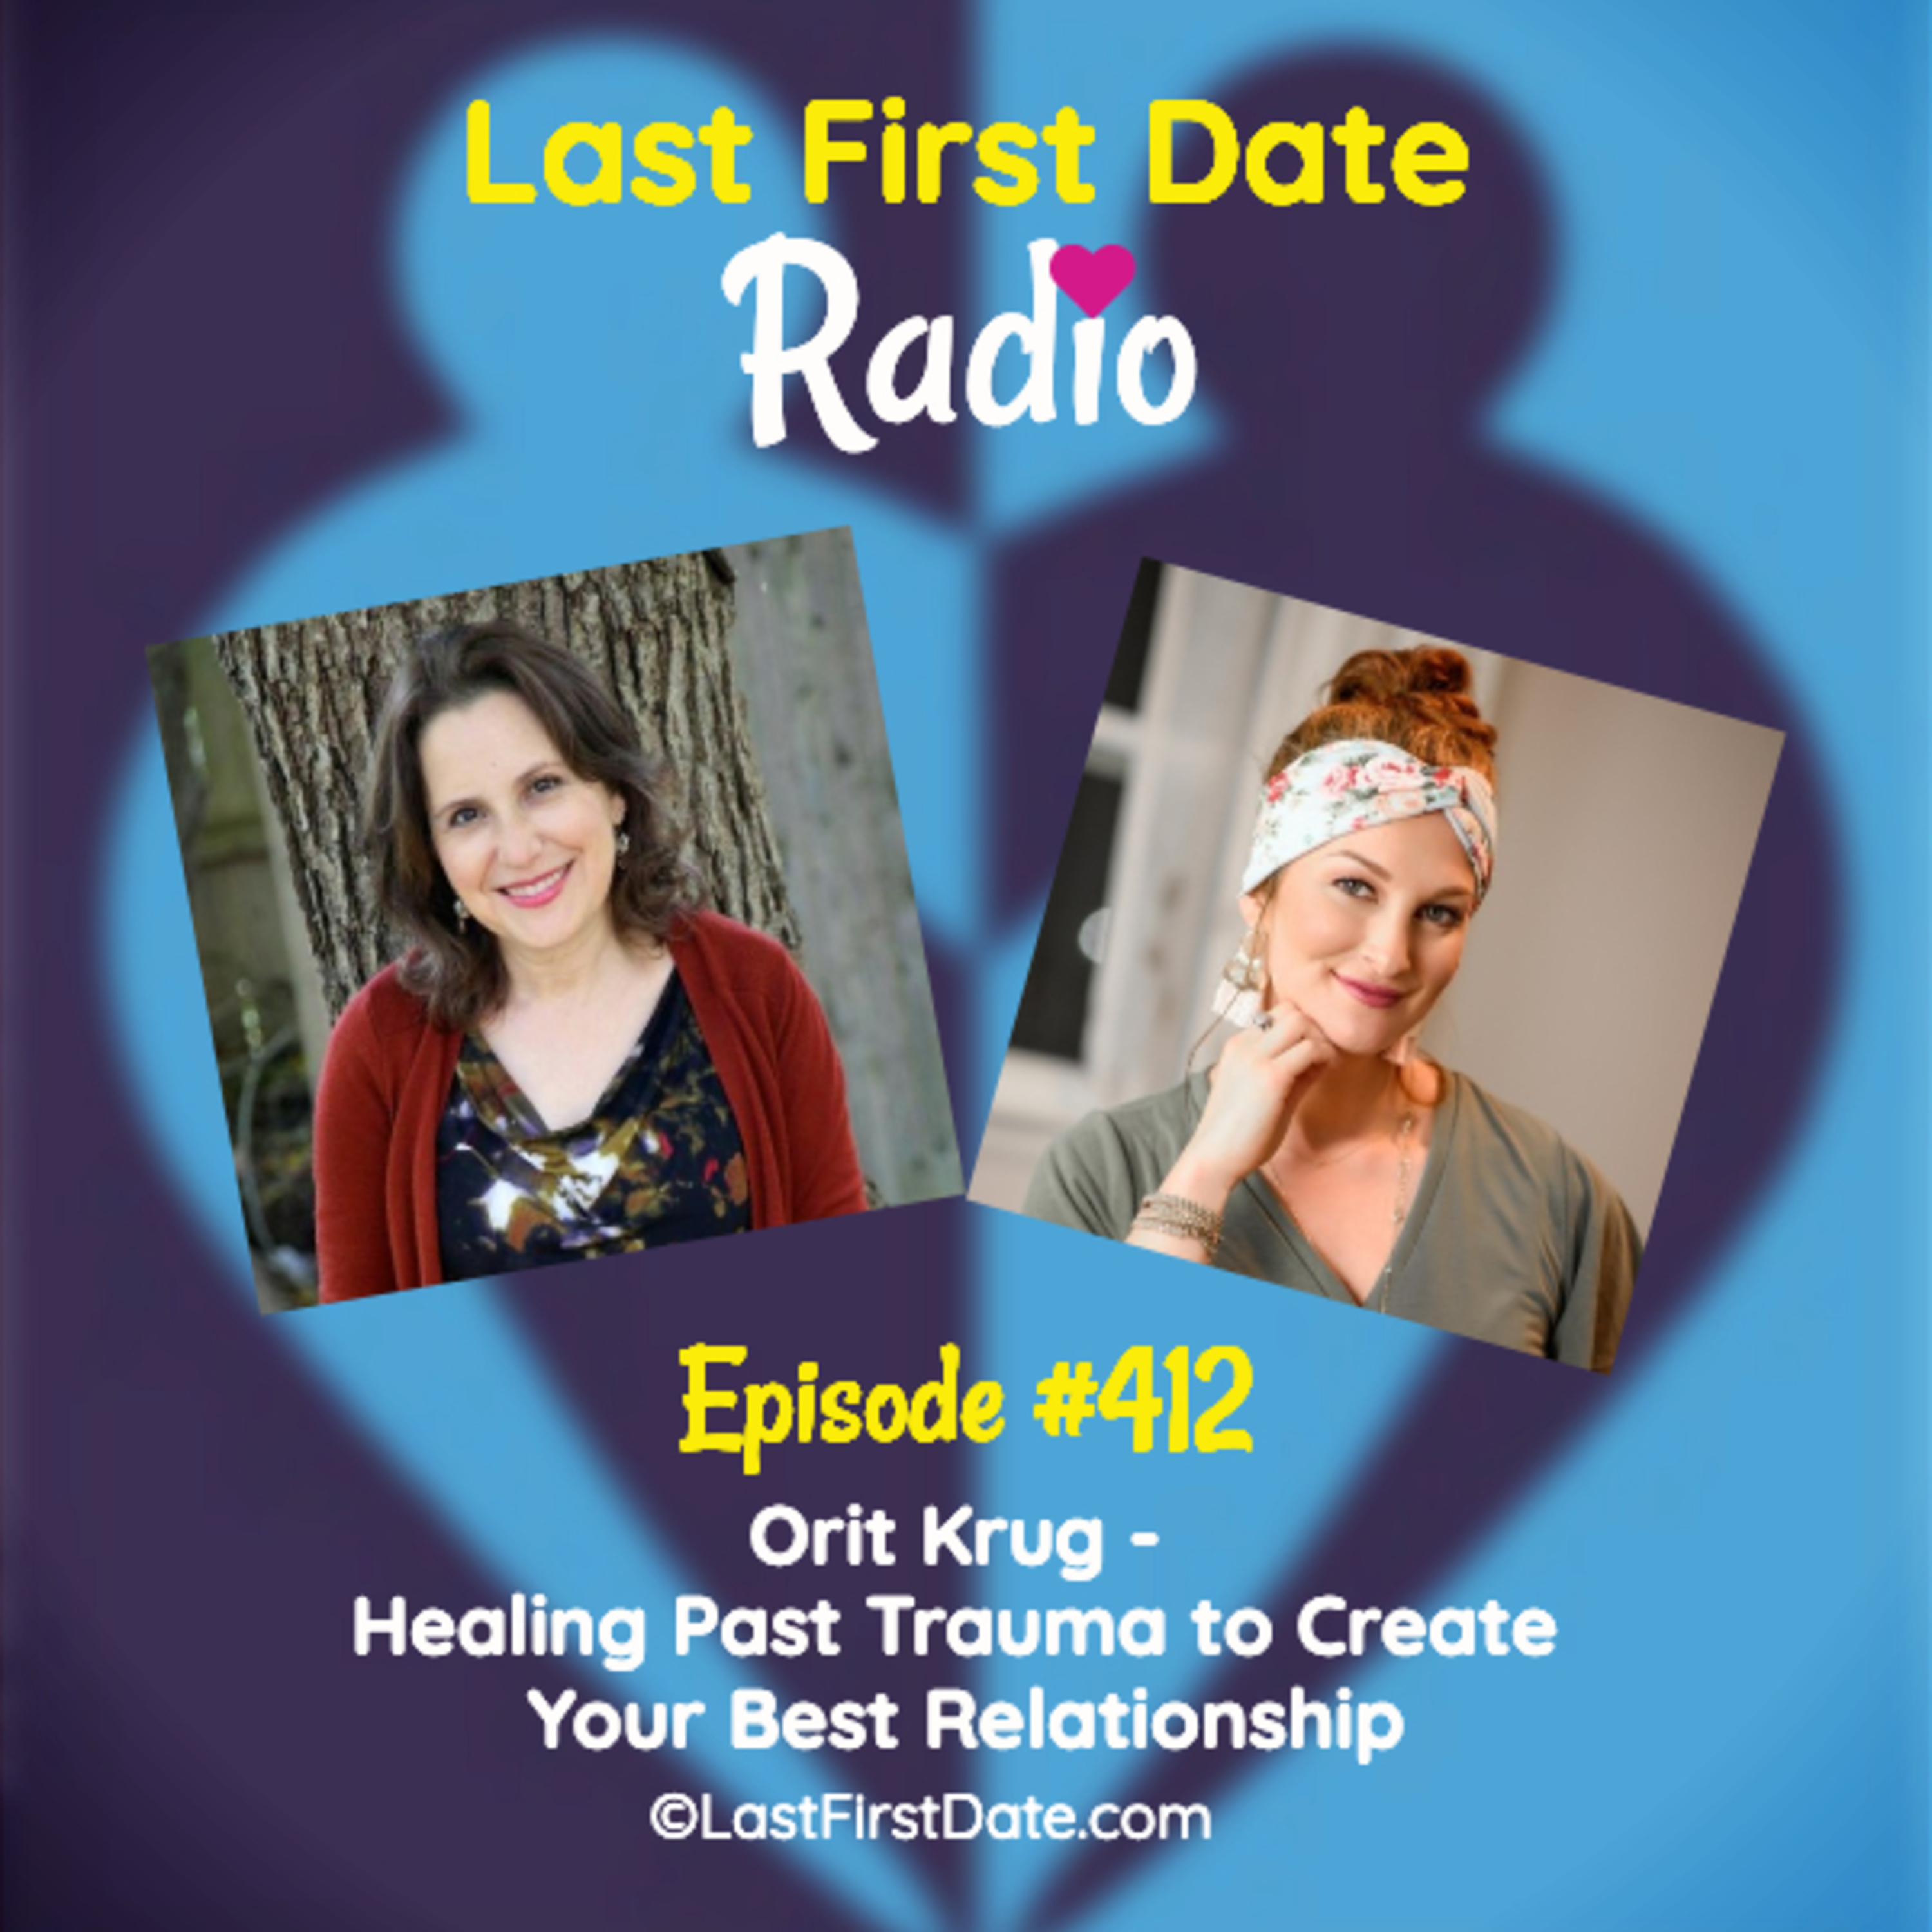 Last First Date Radio - EP 412: Orit Krug - Healing Past Trauma to Create Your Best Relationship